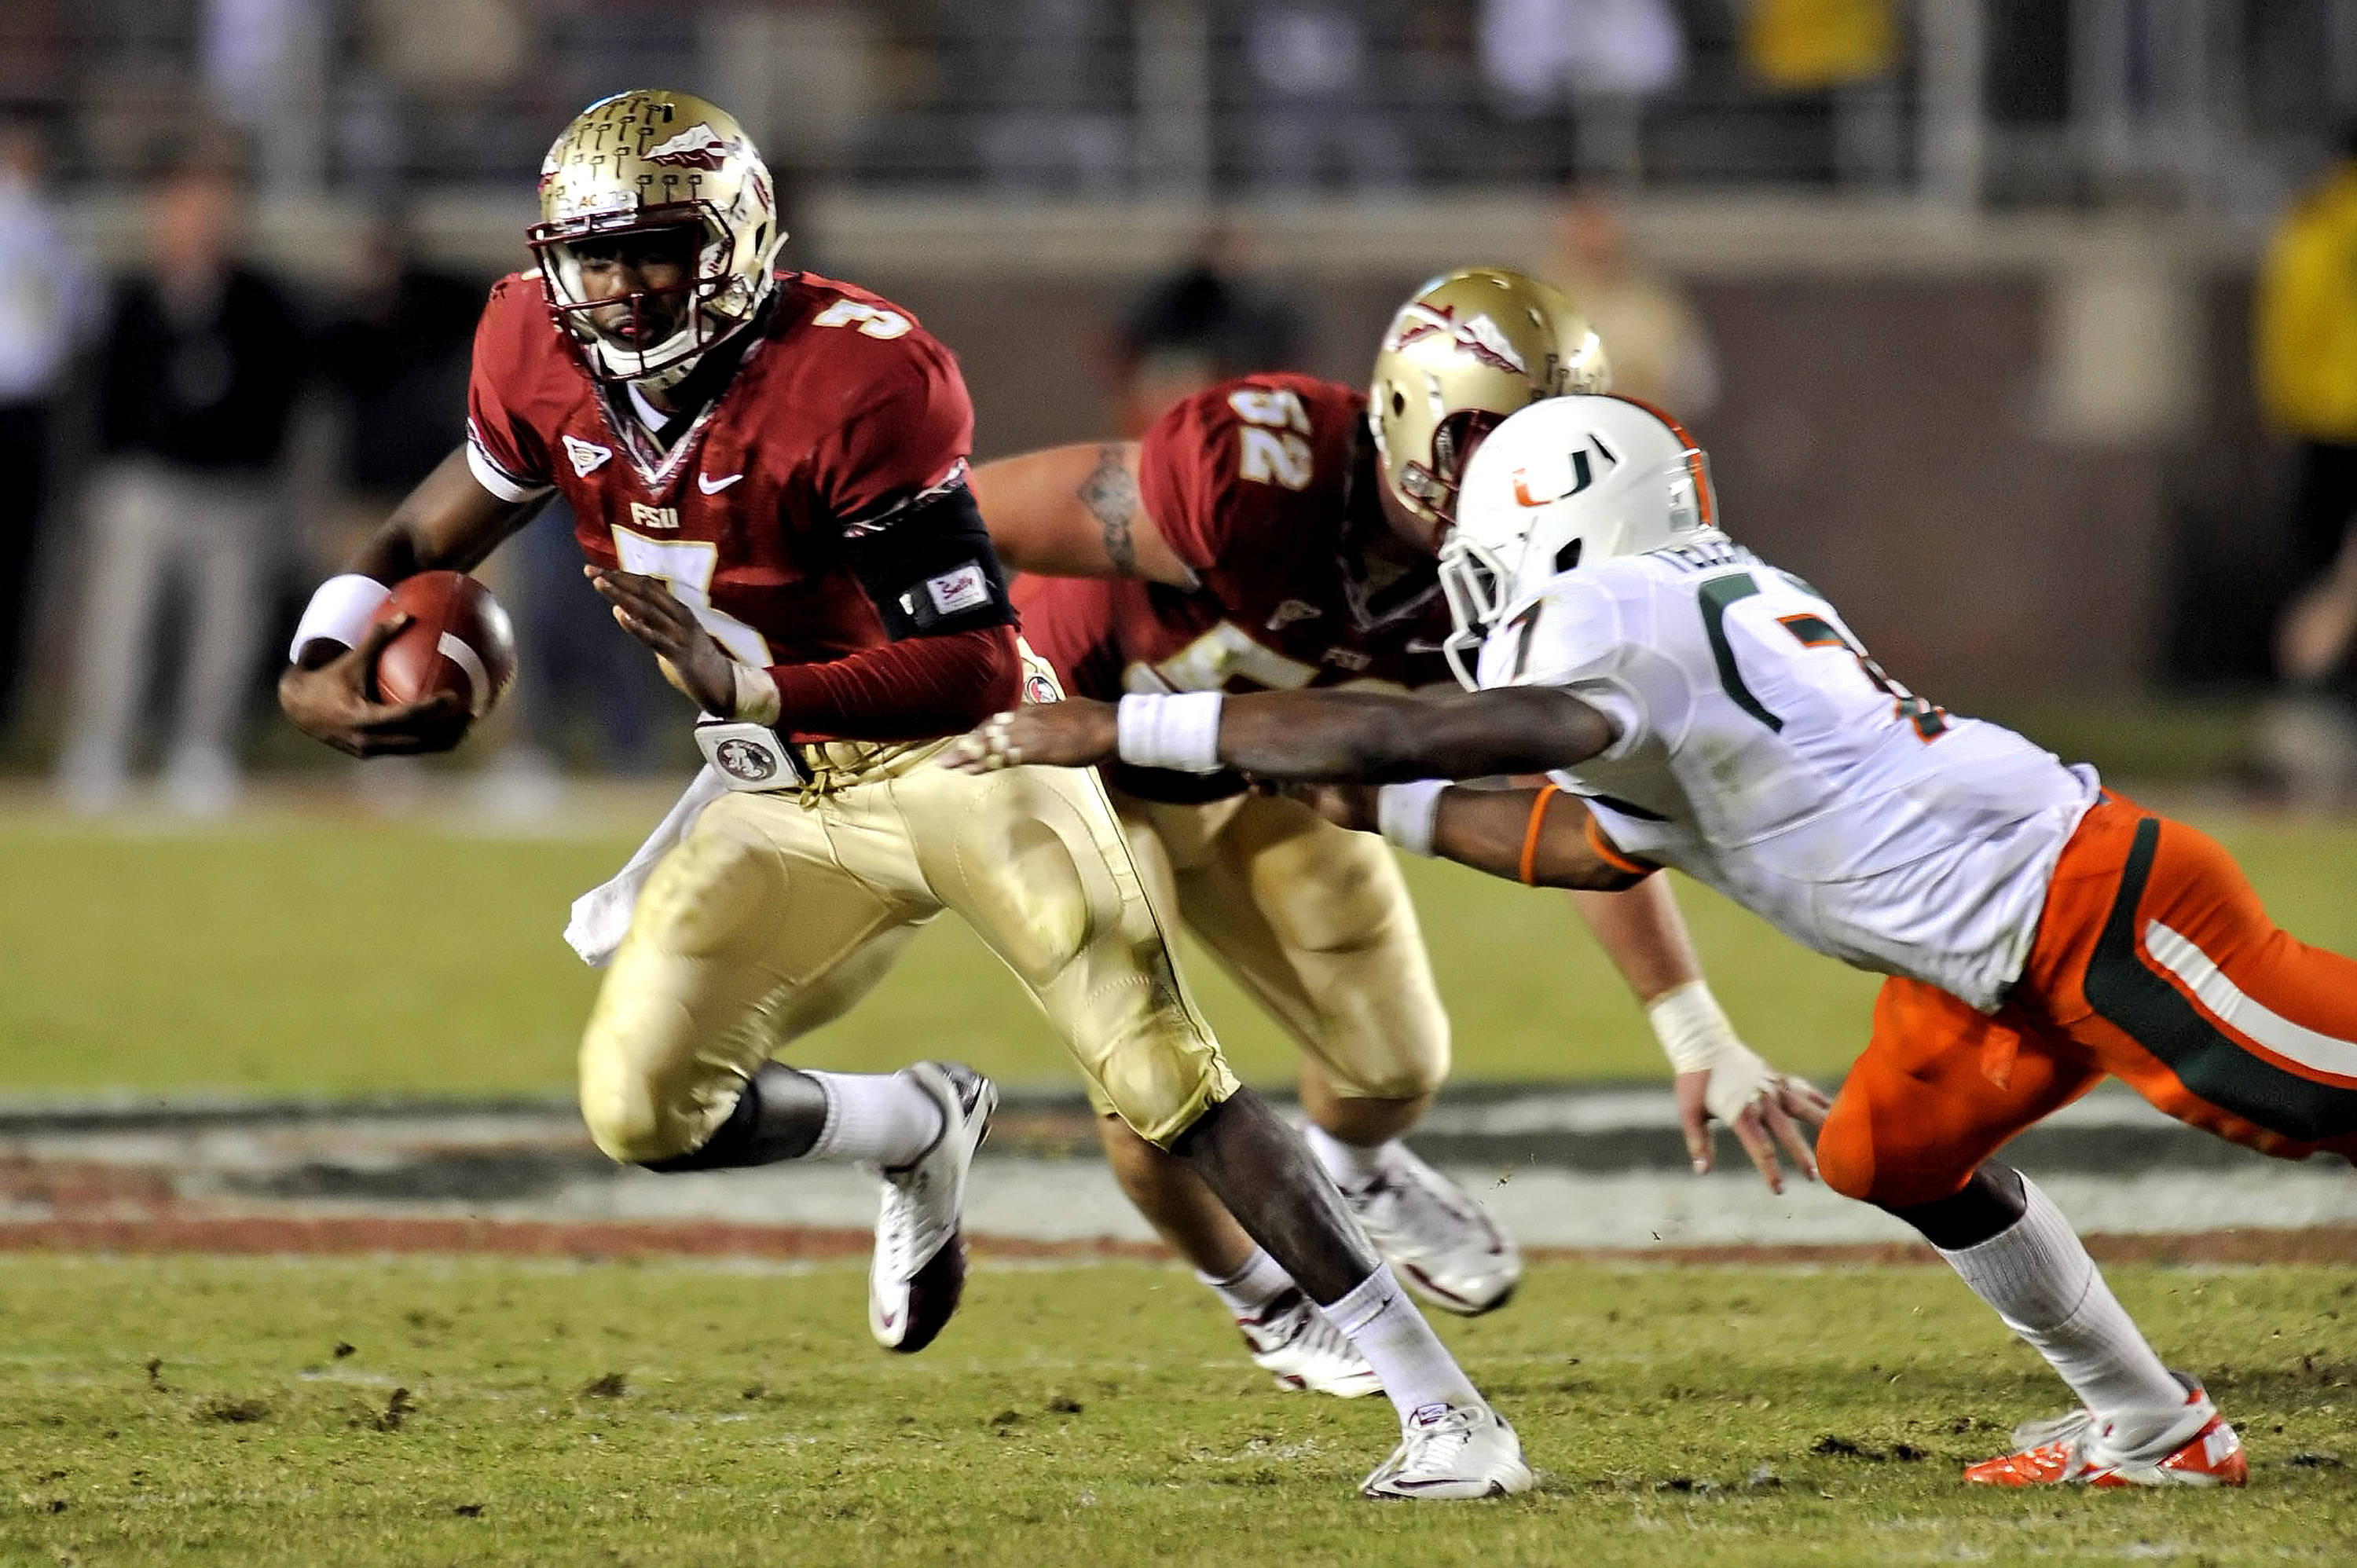 EJ Manuel (3) eludes pressure from a Miami defender on November 12th.  The Seminoles went onto win 23-19 over the Canes.